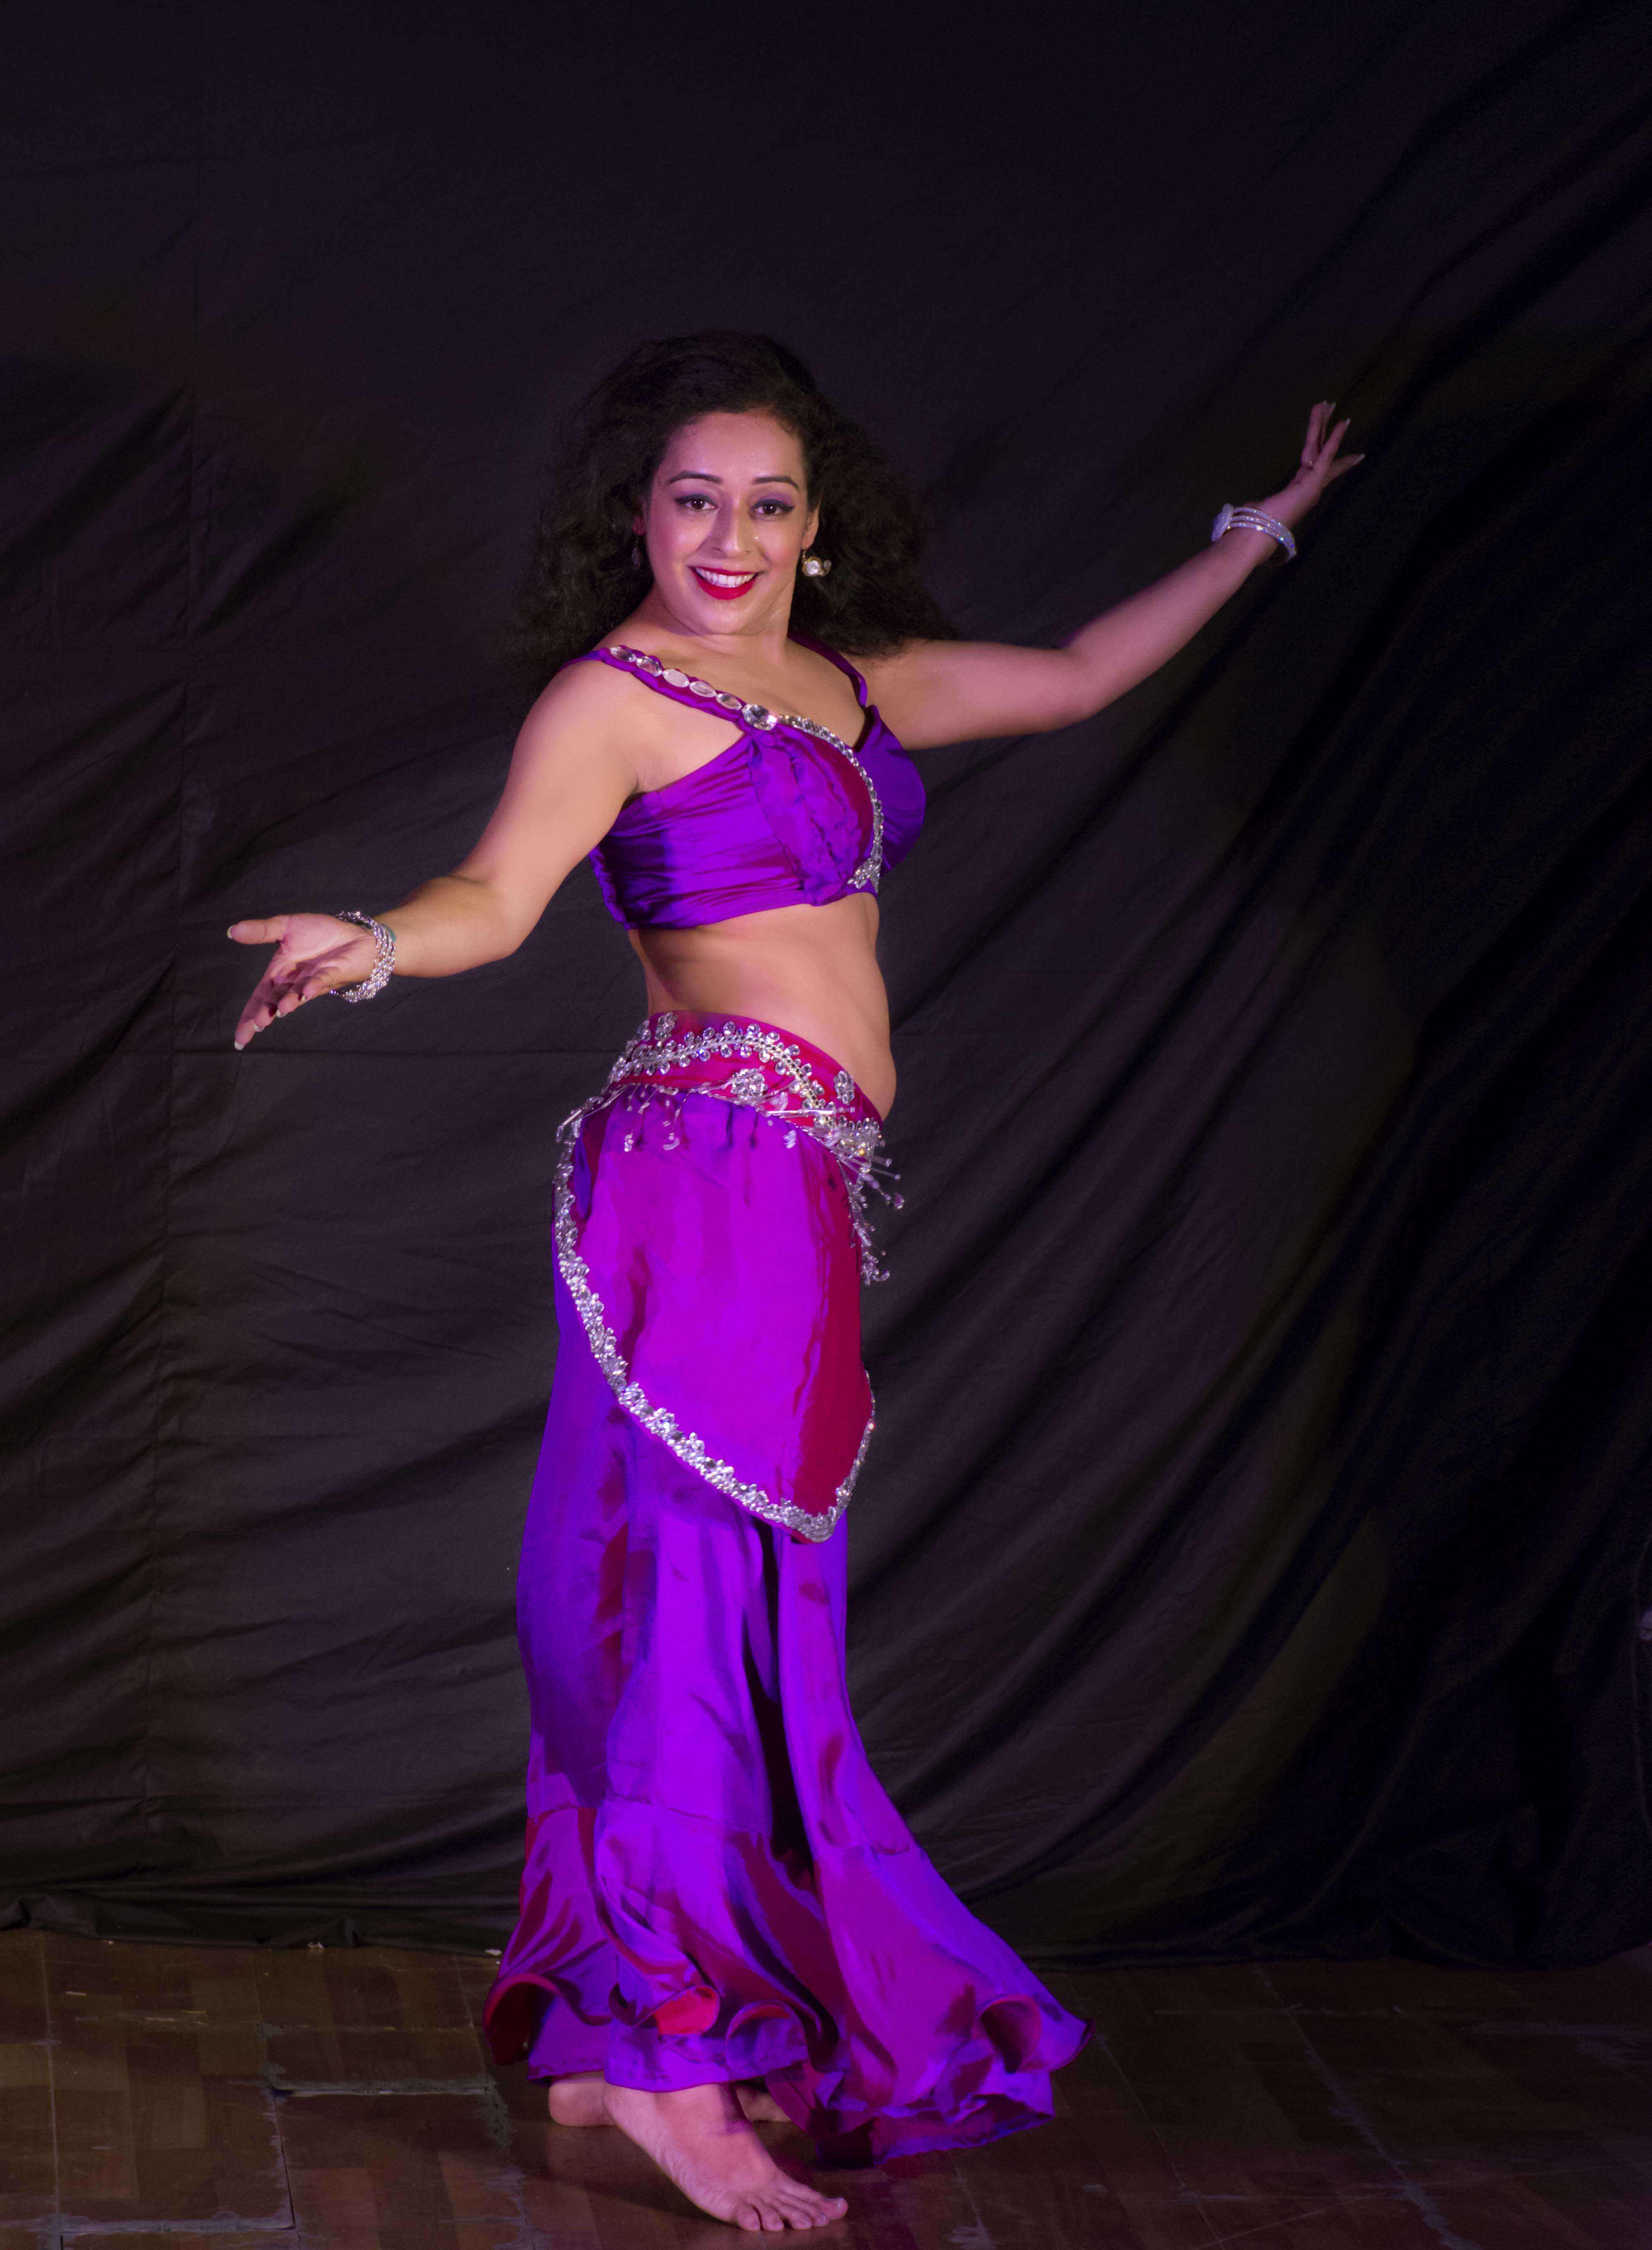 Taal-e-Hafla: One of its kind Belly Dancing performance in